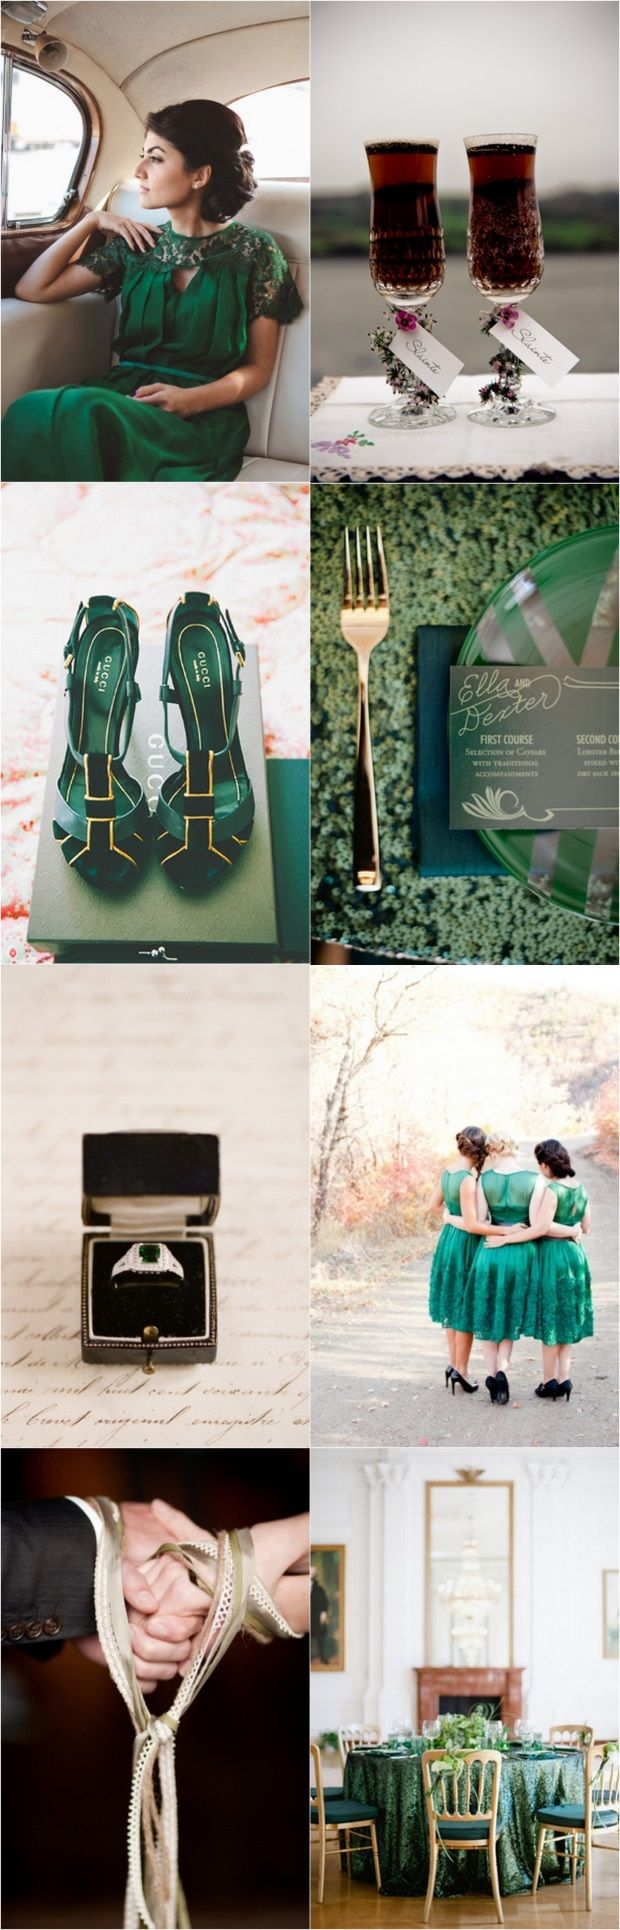 Irish businesses on Pinterest - Weddings Online the forum and directory site for Irish weddings on Pinterest